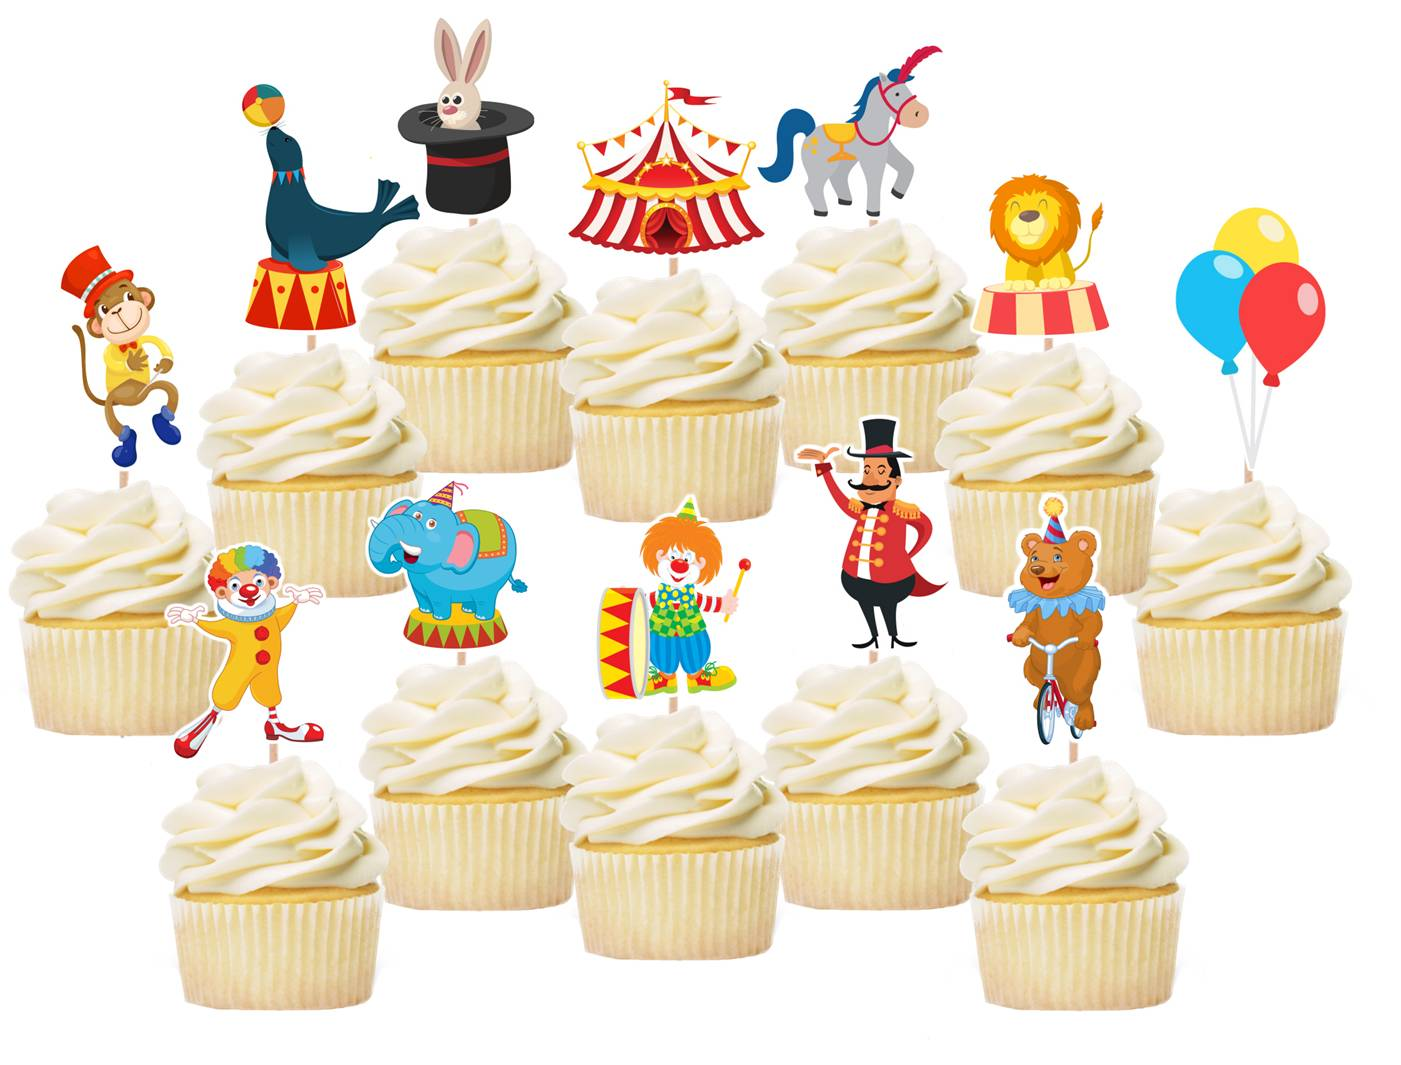 Circus cupcake toppers, cake decorations